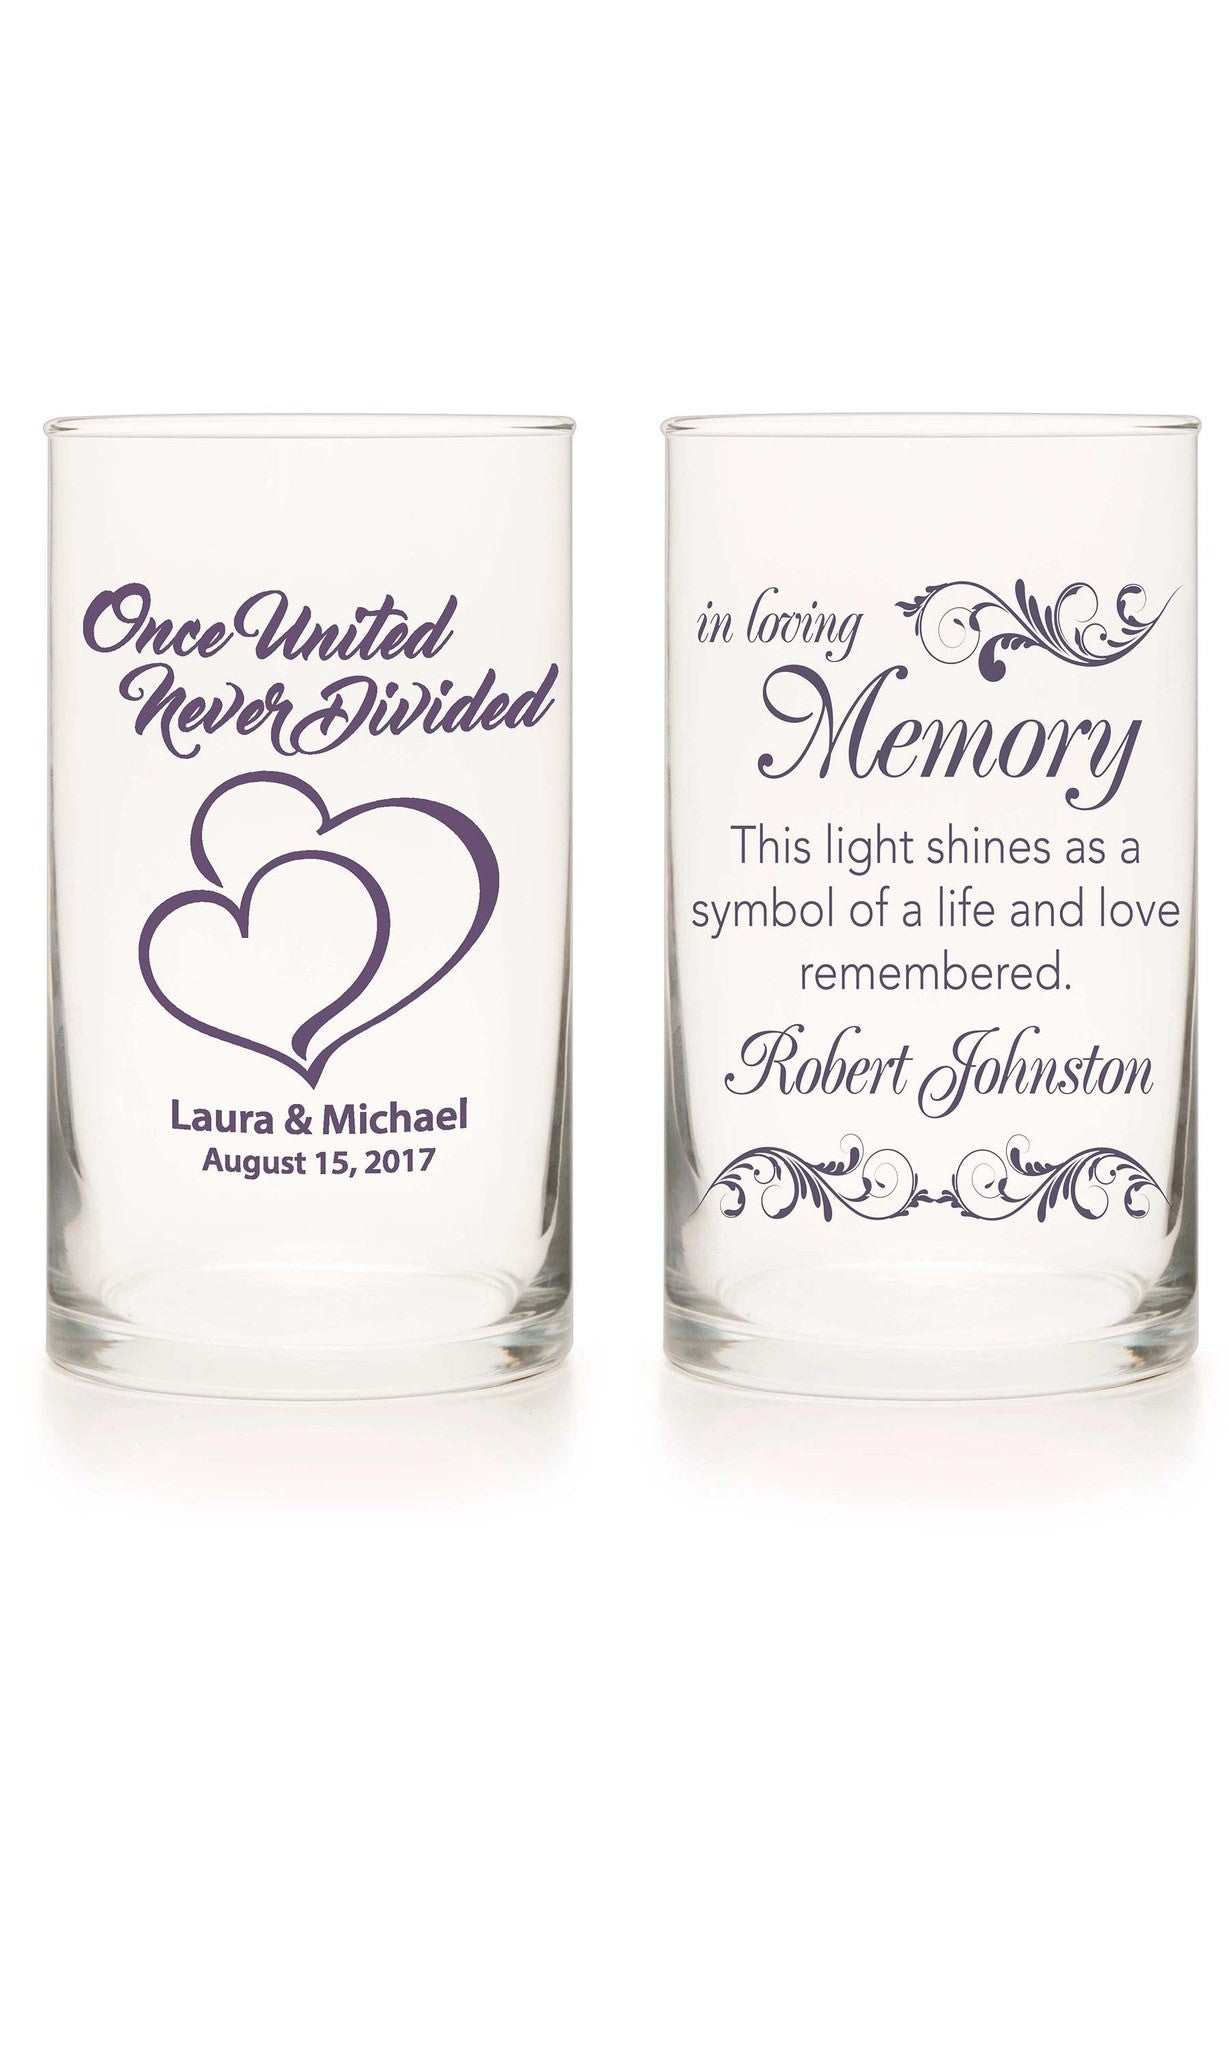 Unity Candle & Memorial Candle Set - Catch The Bouquet Lavender - Personalized Candle Holders - Wedding Candles - 11